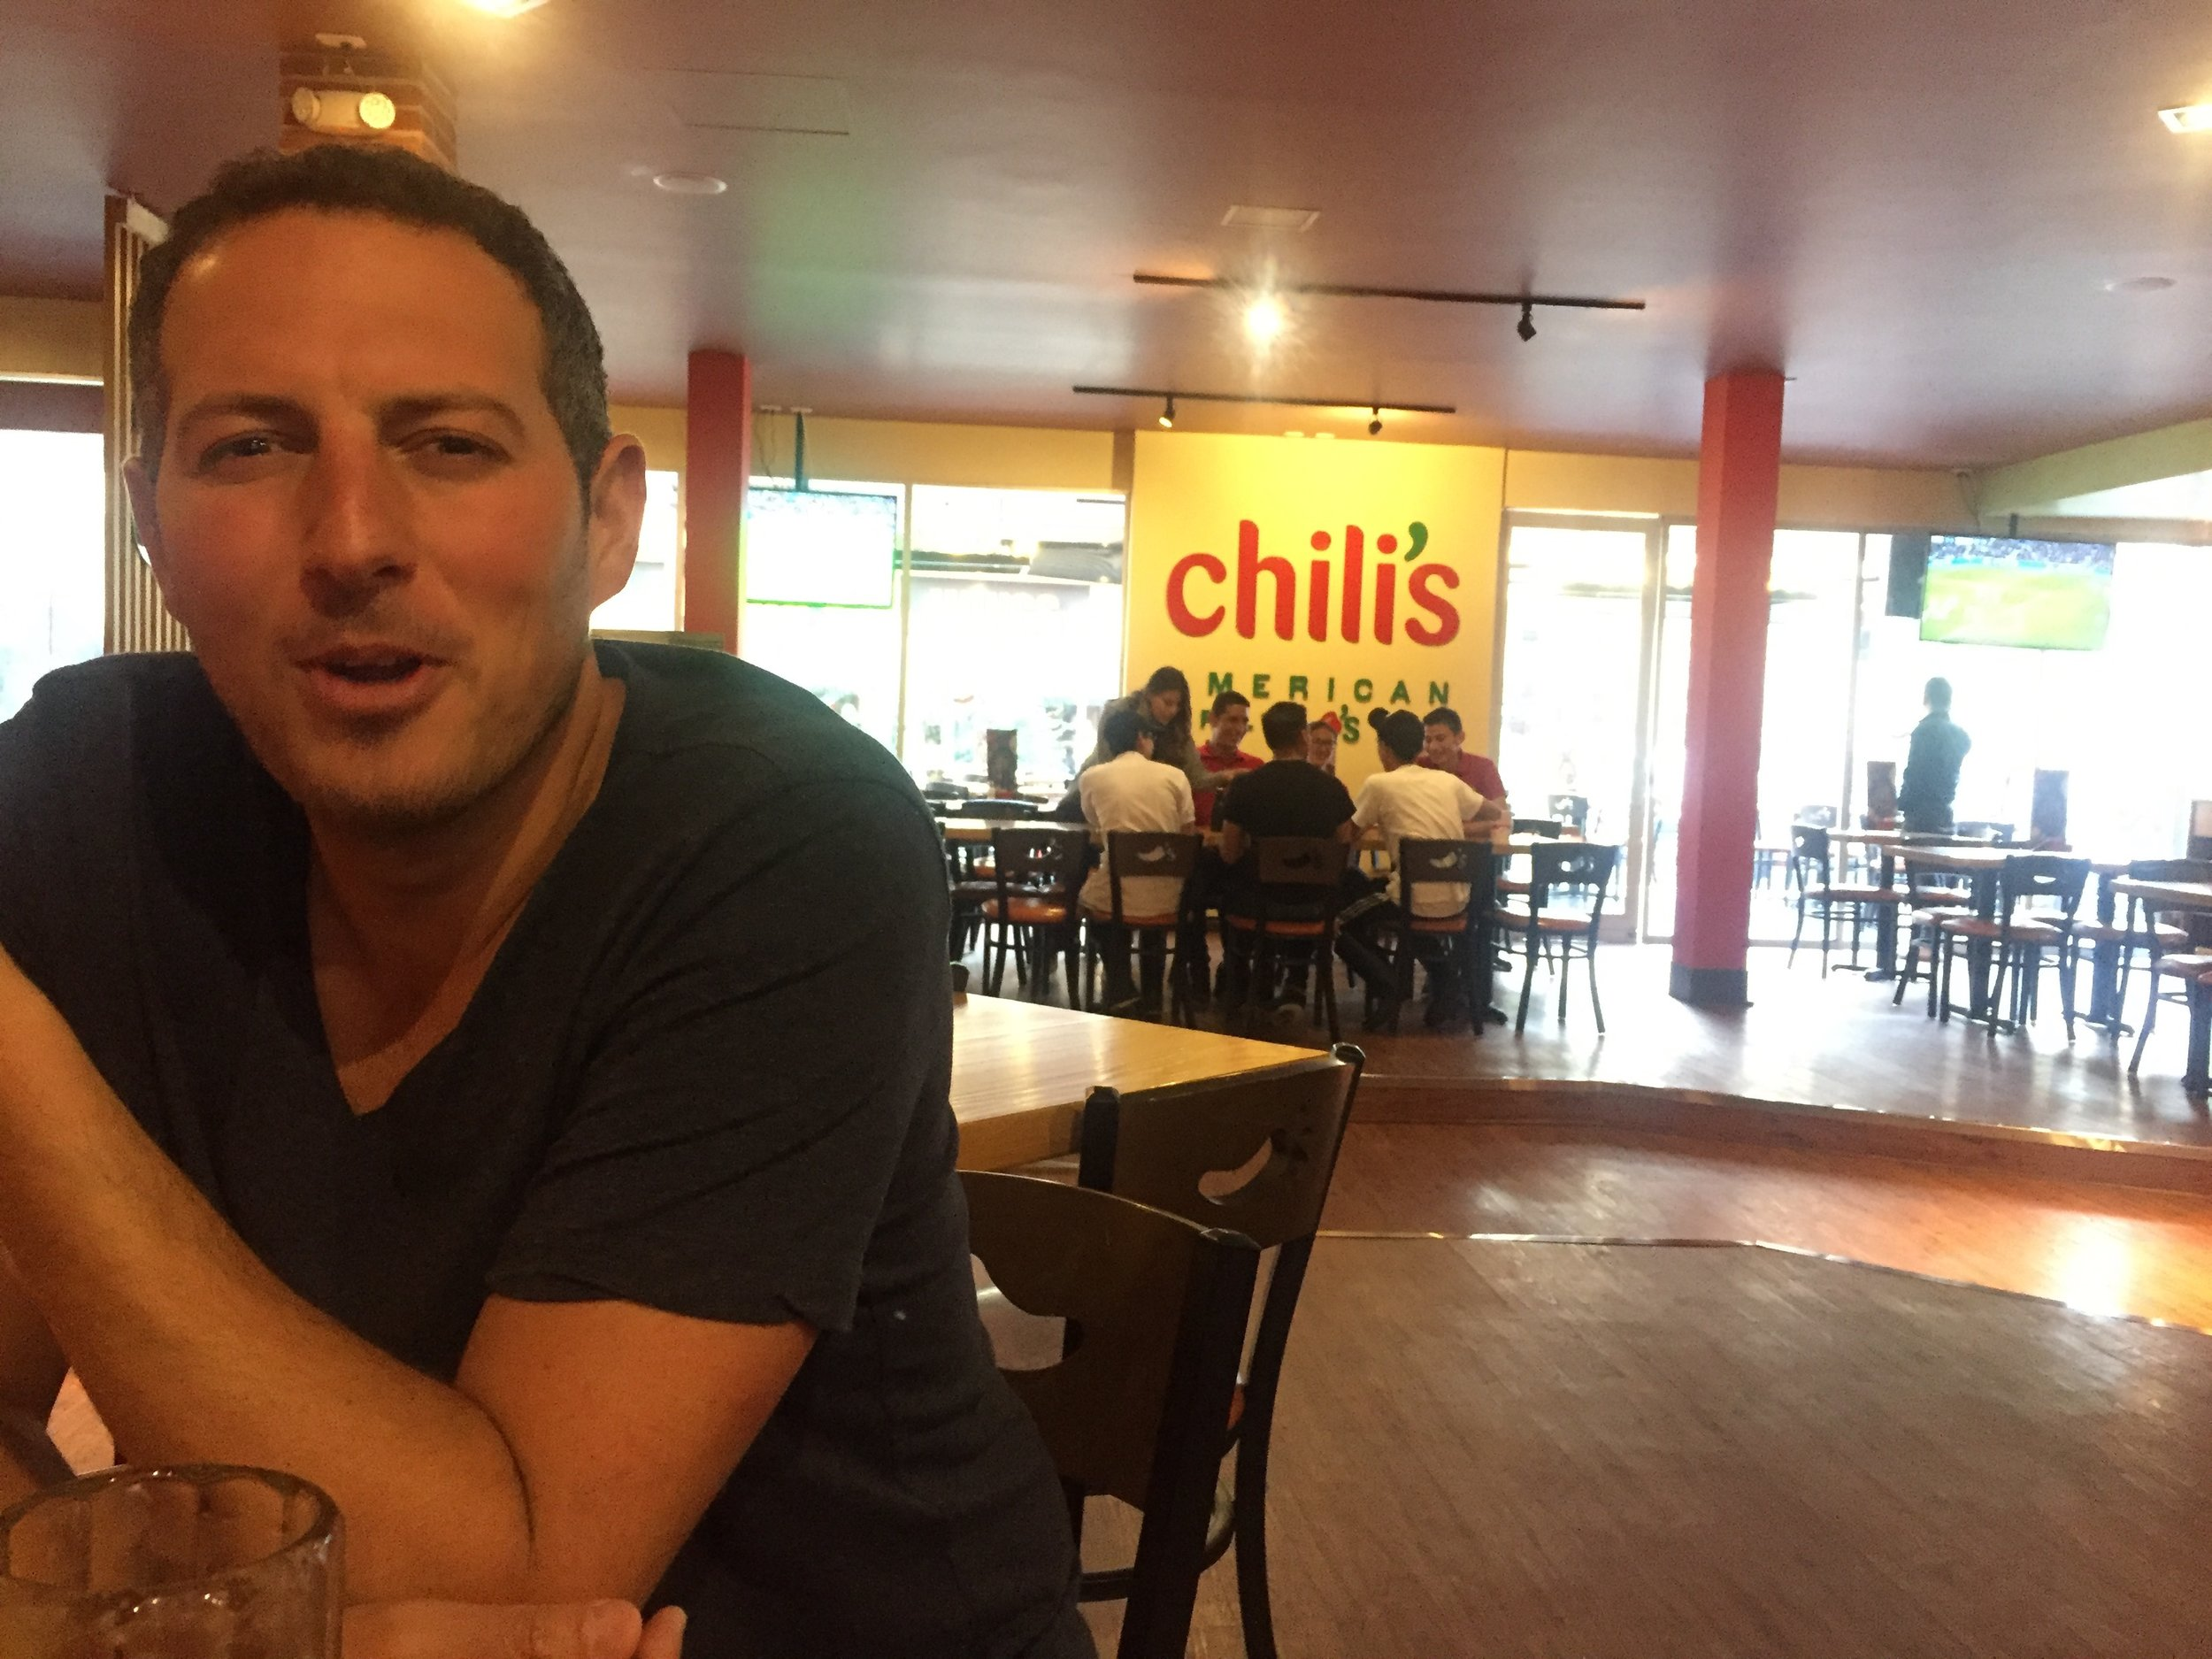 When you're the only people in Chili's so the entire staff has a meeting instead of caring that you're there.